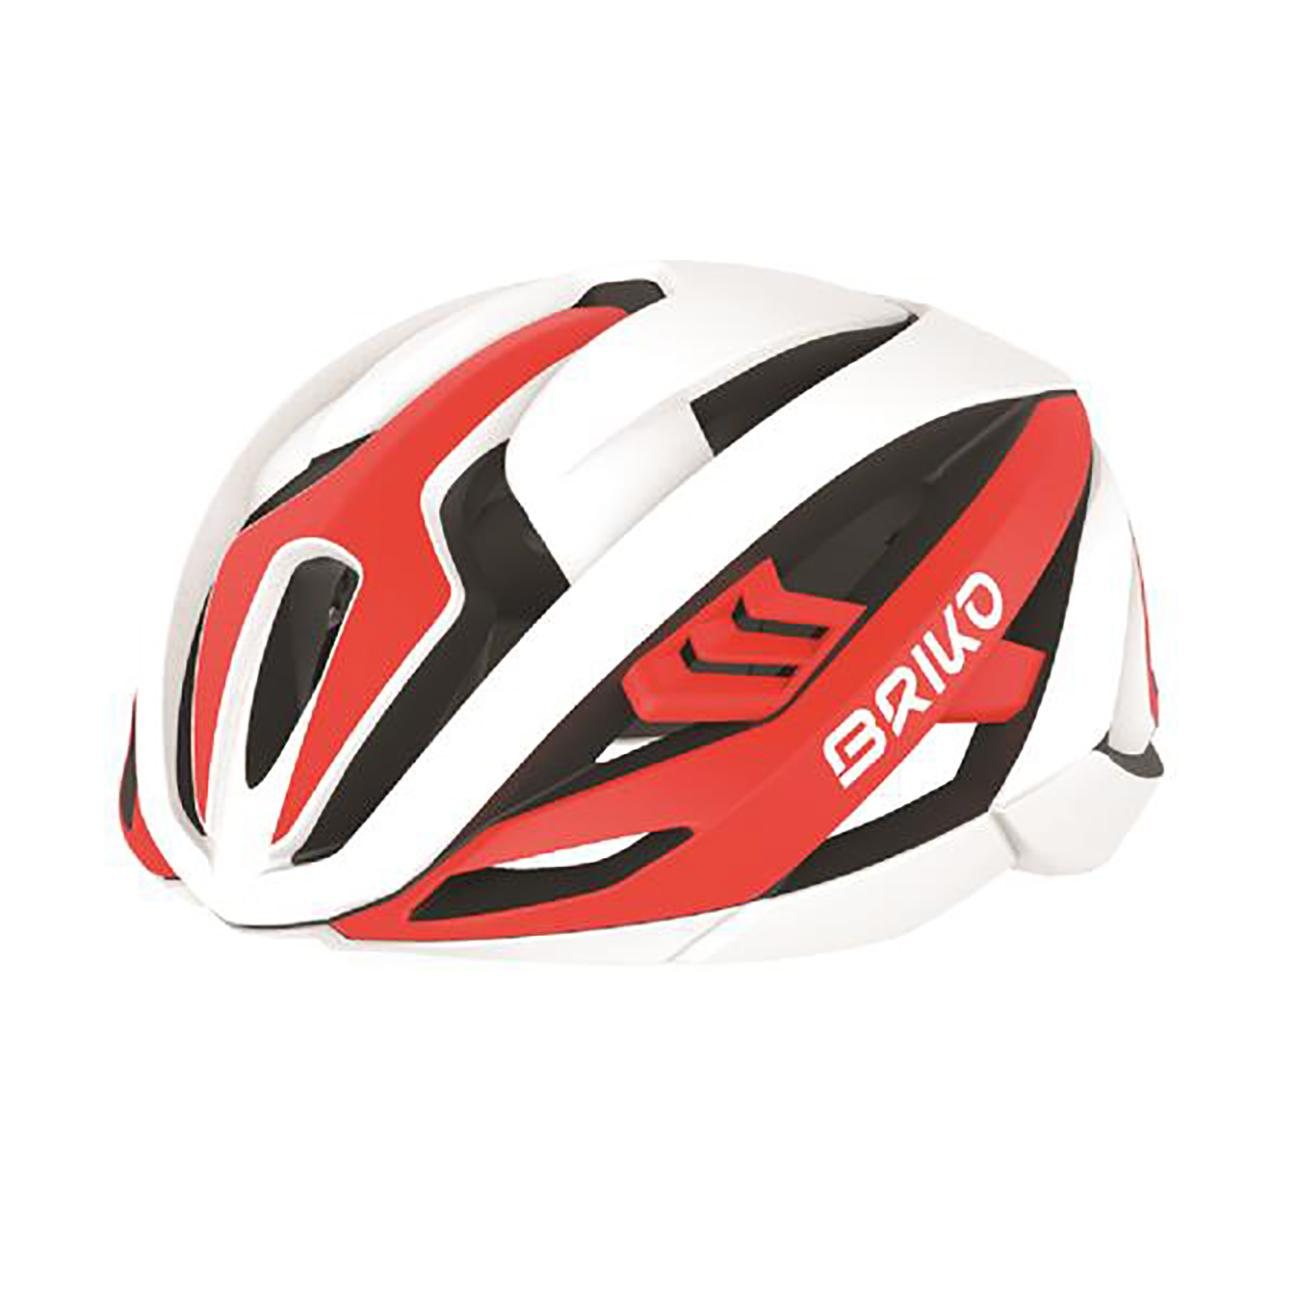 | Briko Fietshelm Race unisex Rood Wit - Quasar Bike Helmet Shiny Red White